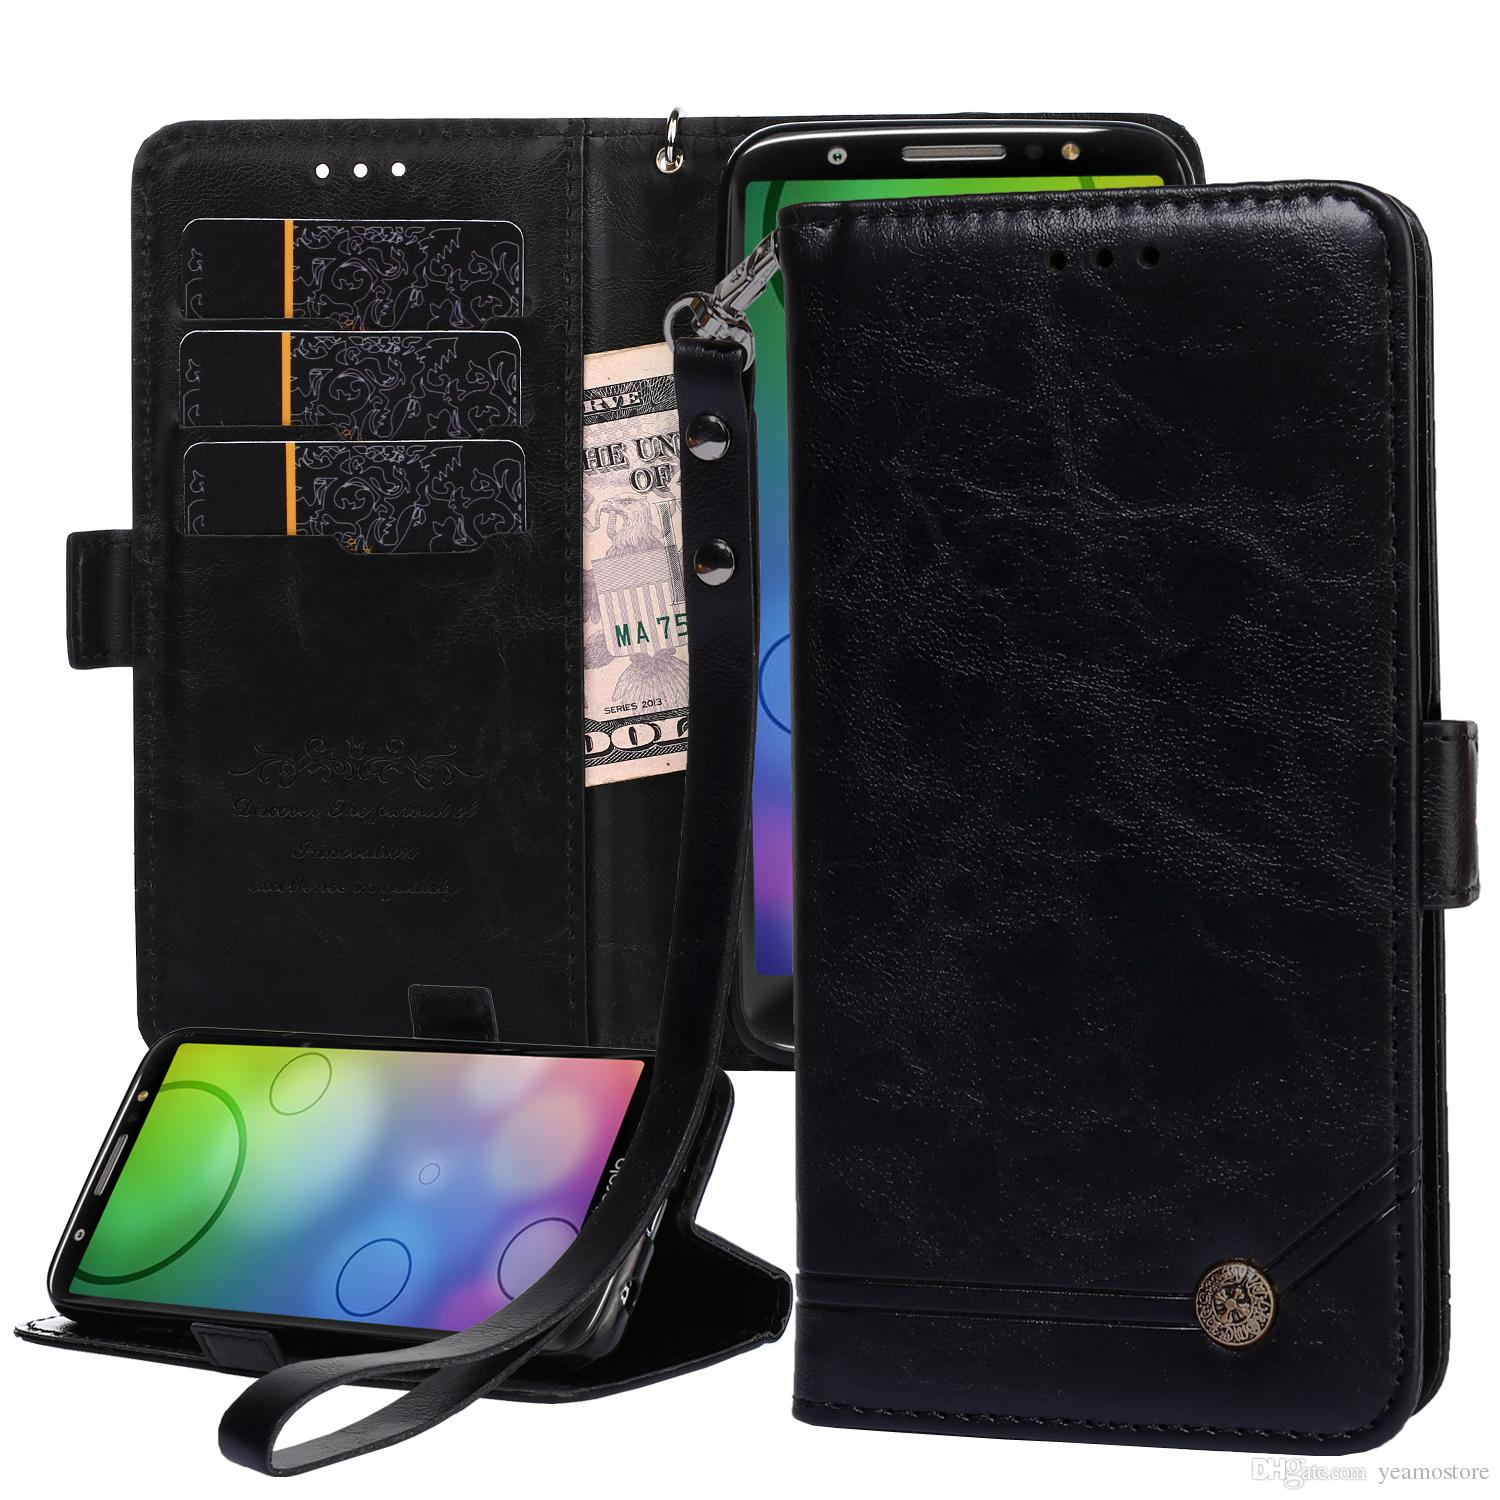 timeless design 79e4a 2d5fd Retro Luxury Wallet Case for Motorola Moto G6 2018 Moto Z3 play PU Leather  Flip Case Cover with Hang Rope